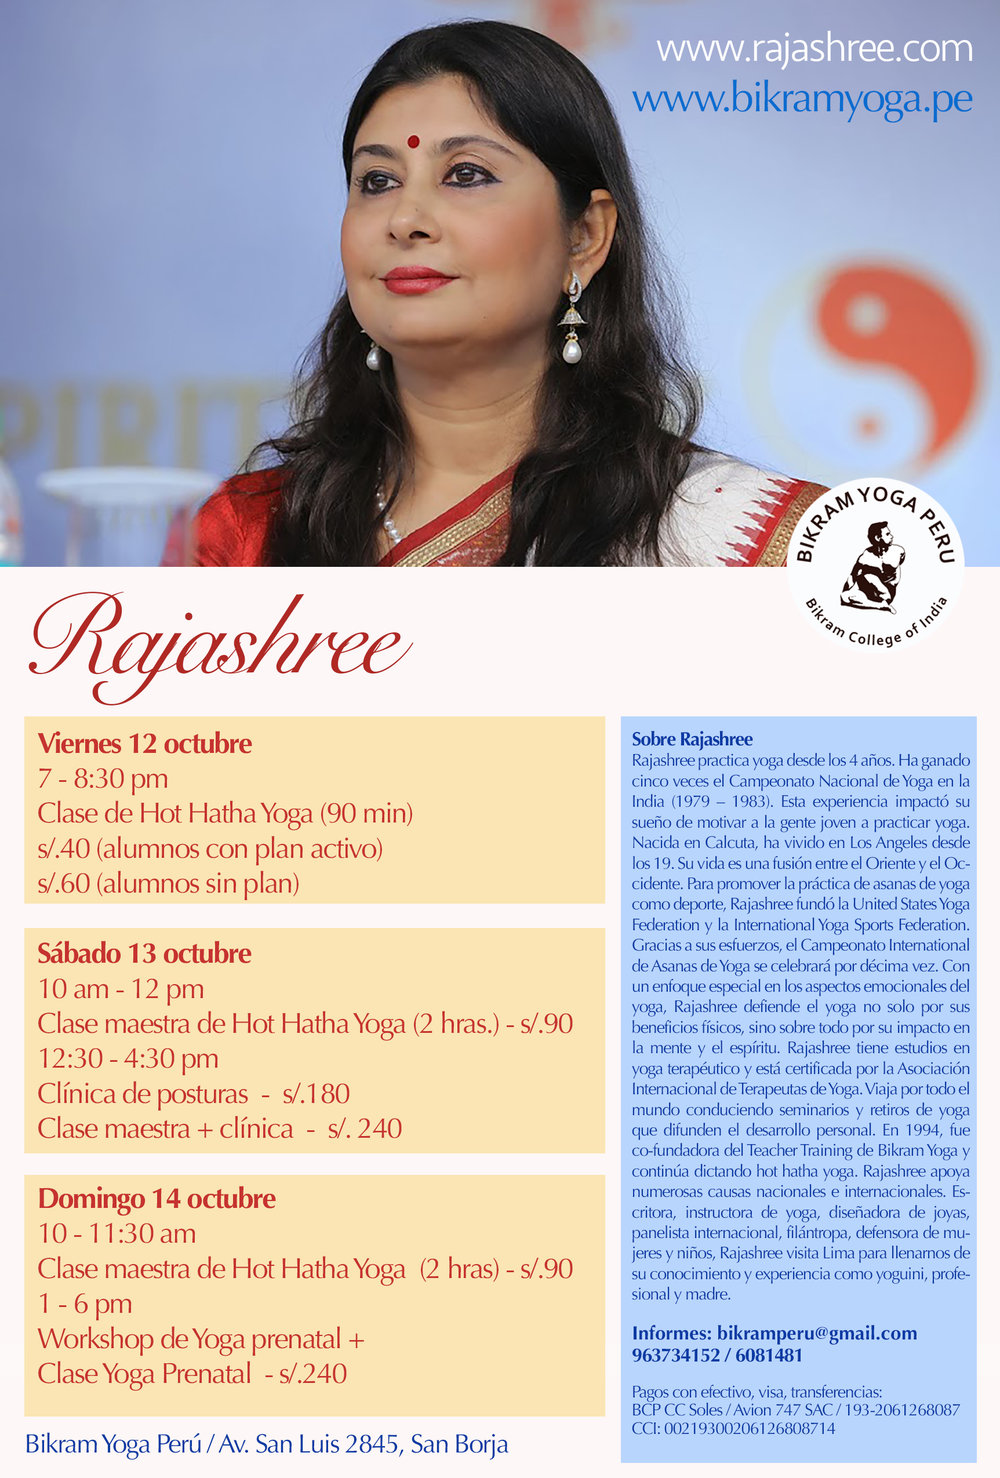 Rajashree Lima 2018_flyer final.jpg